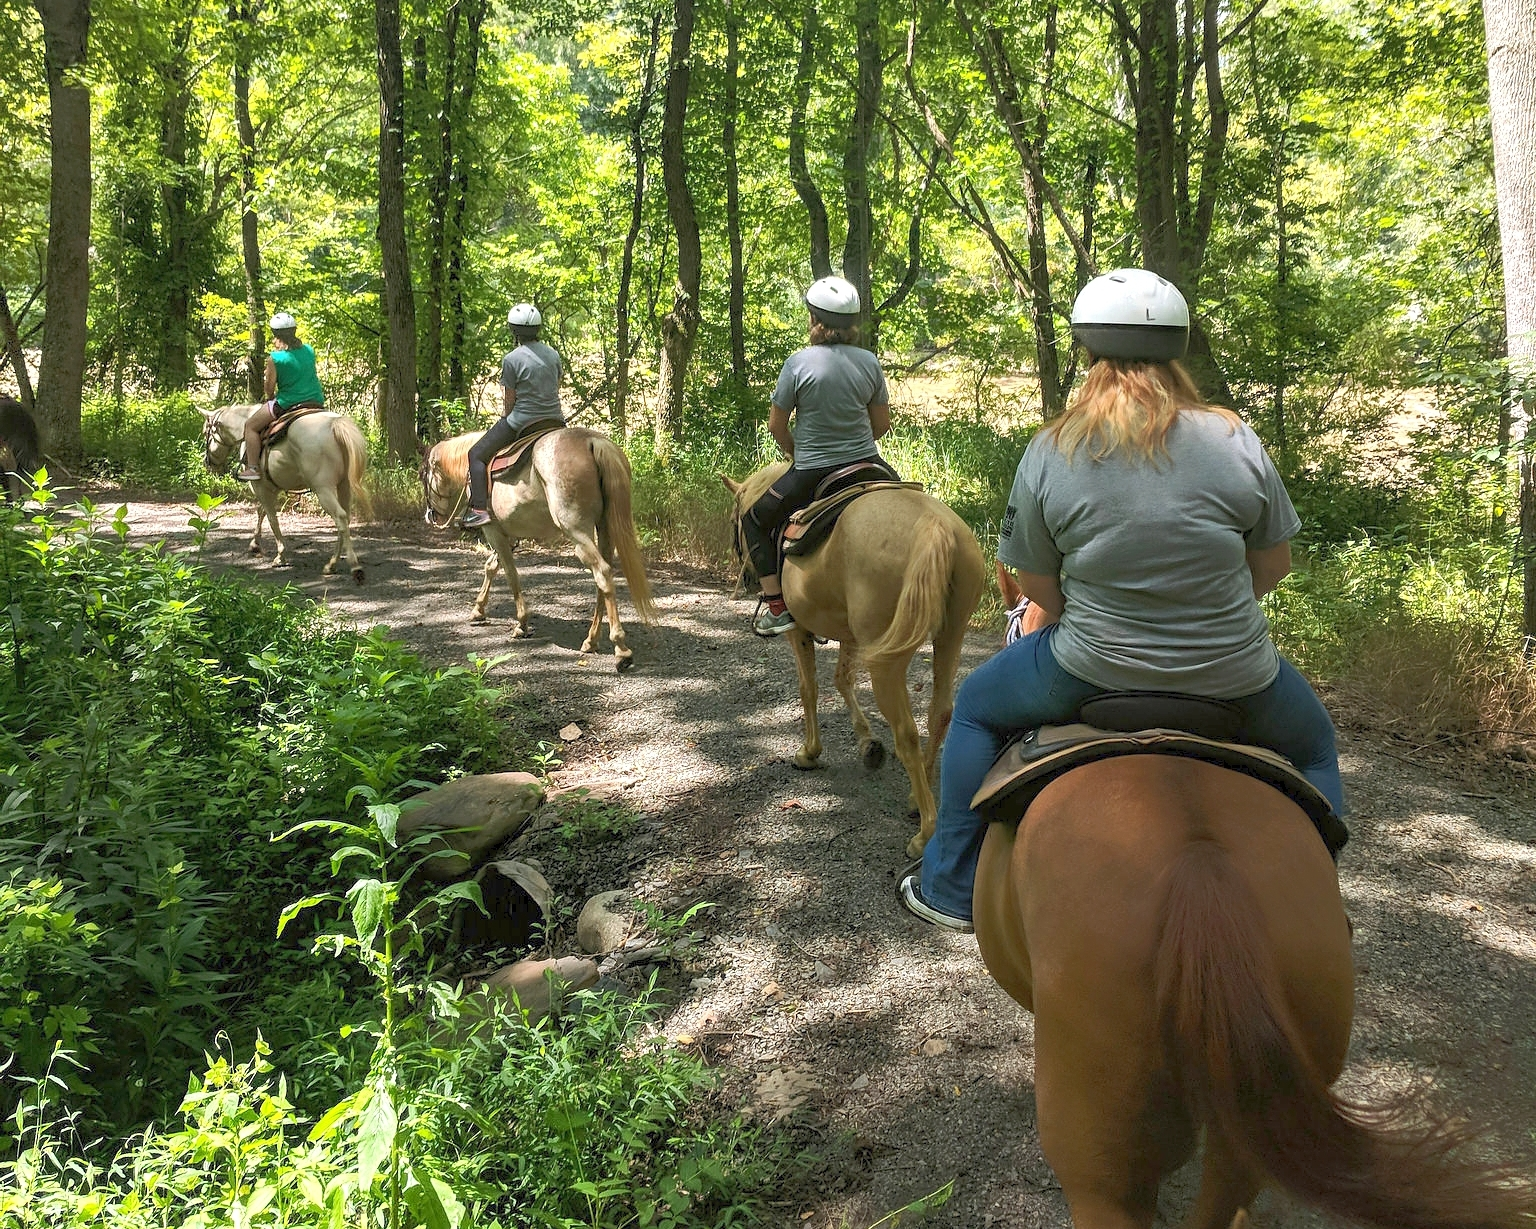 photo courtesy of virginia state parks